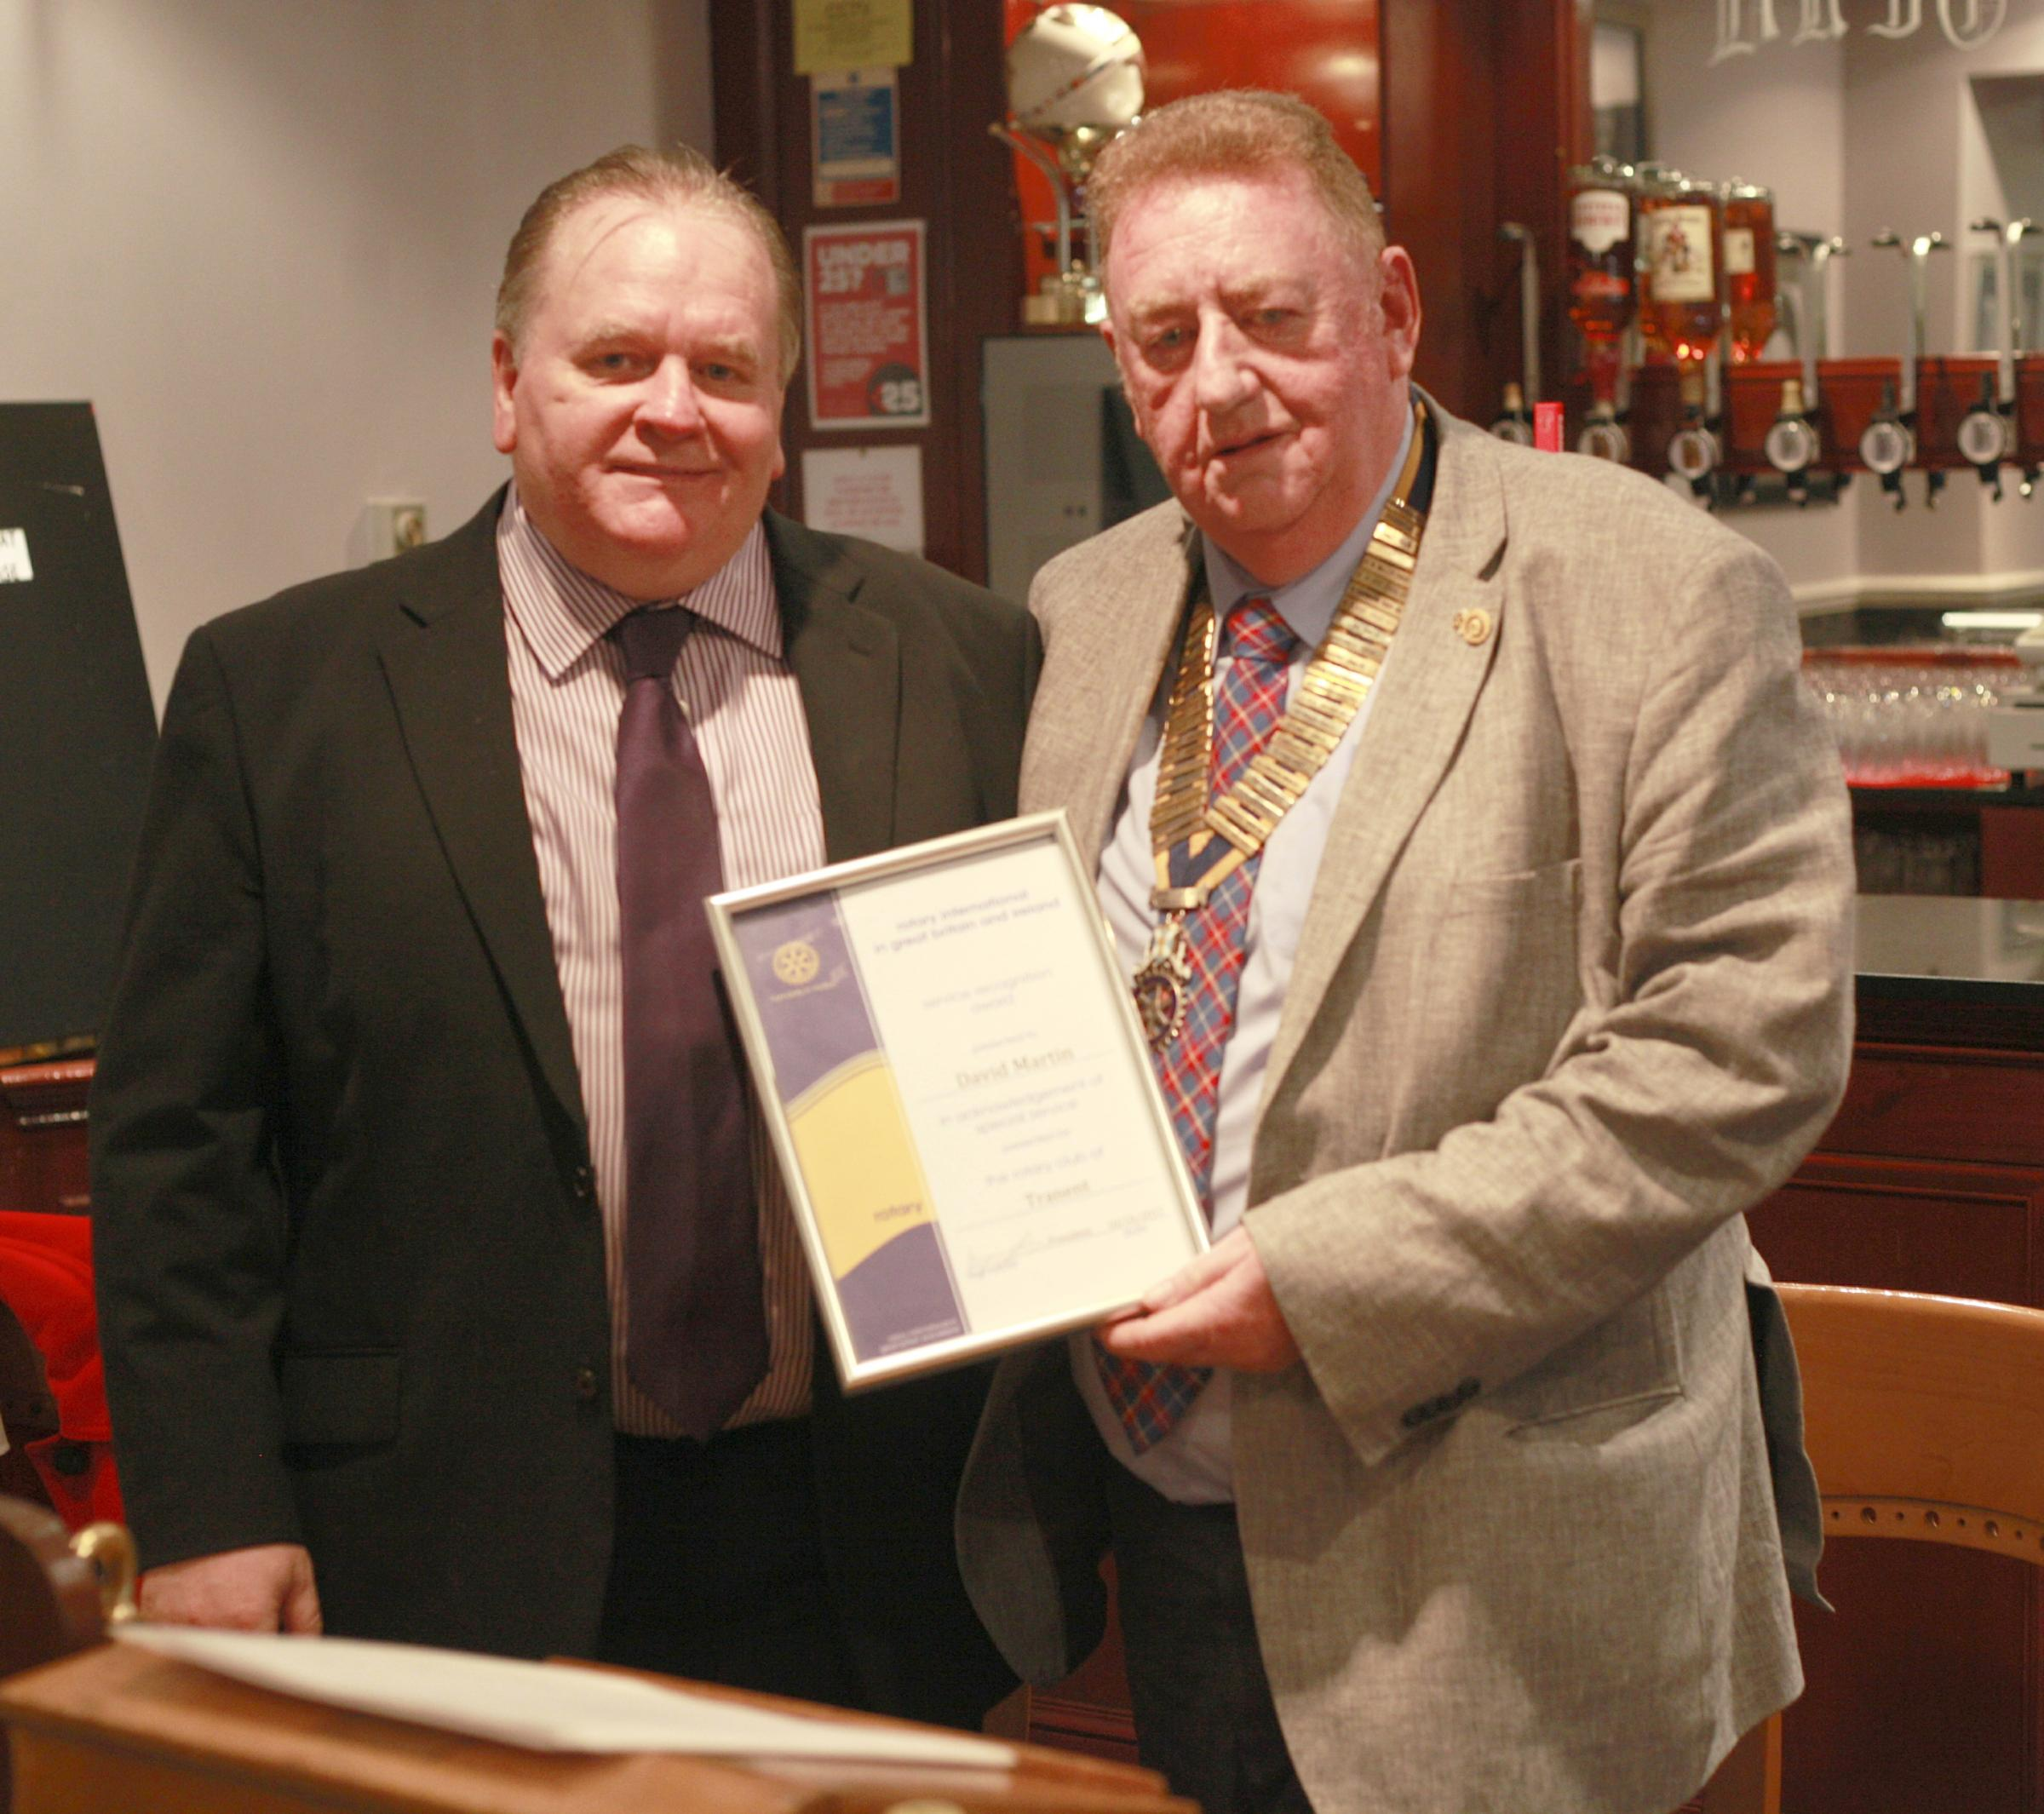 David Martin was presented with an award for all his community work by the Rotary Club of Tranent president Bryson Glass